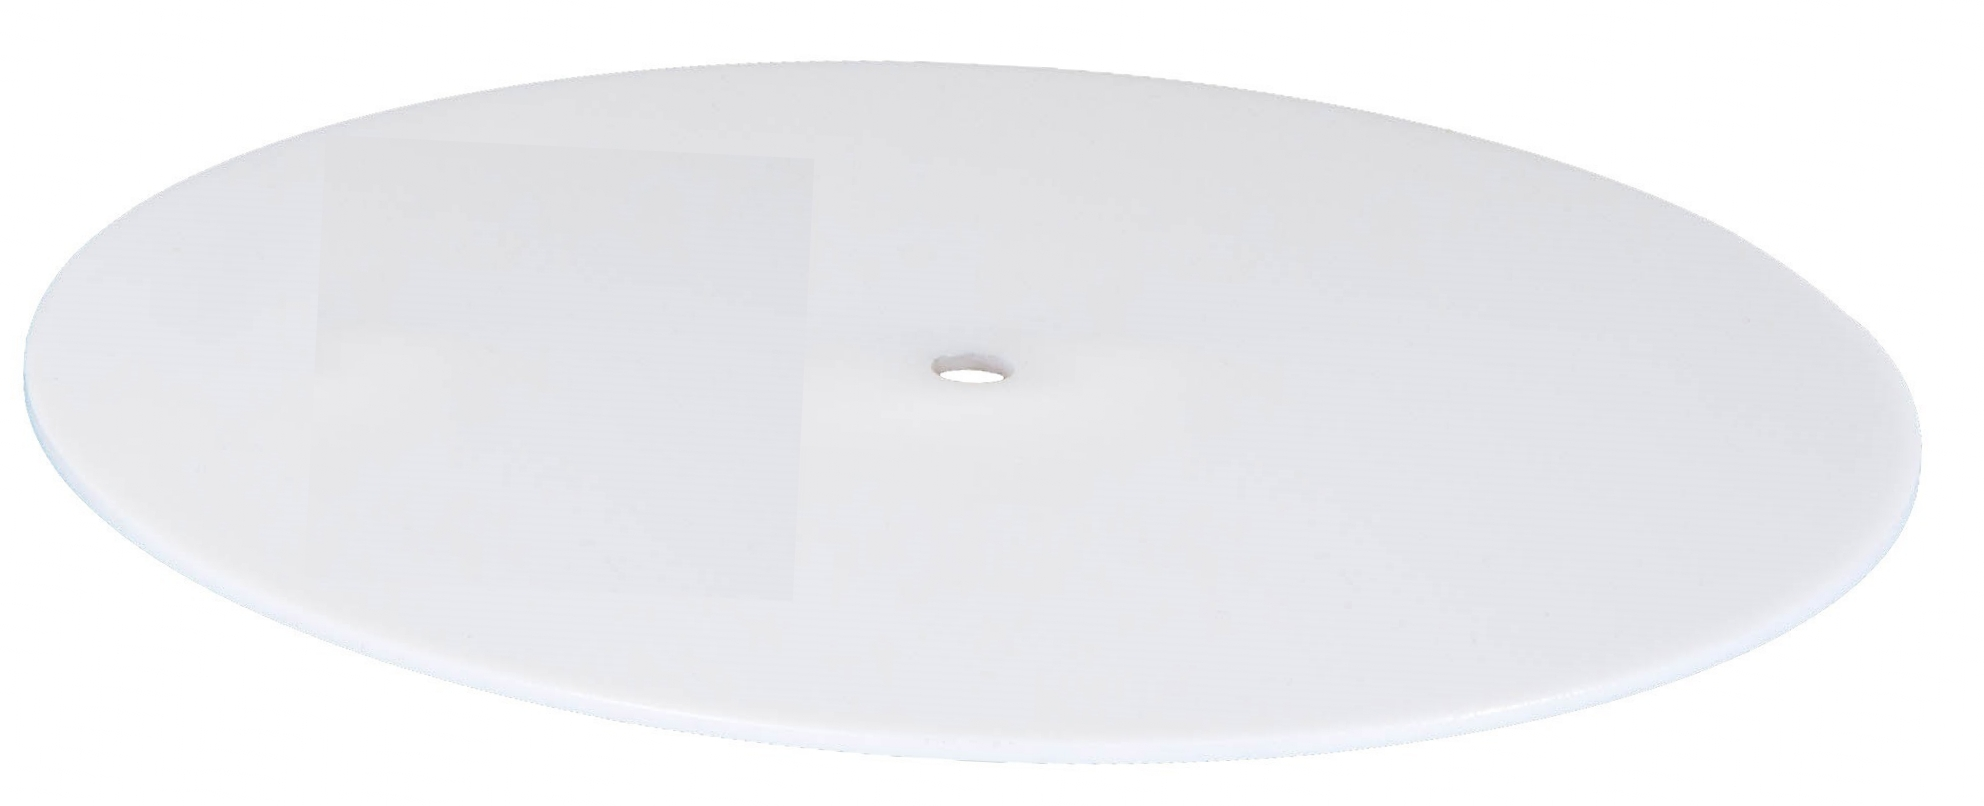 be3822c4cea7 Lampshade Diffuser — The Lighting Guy